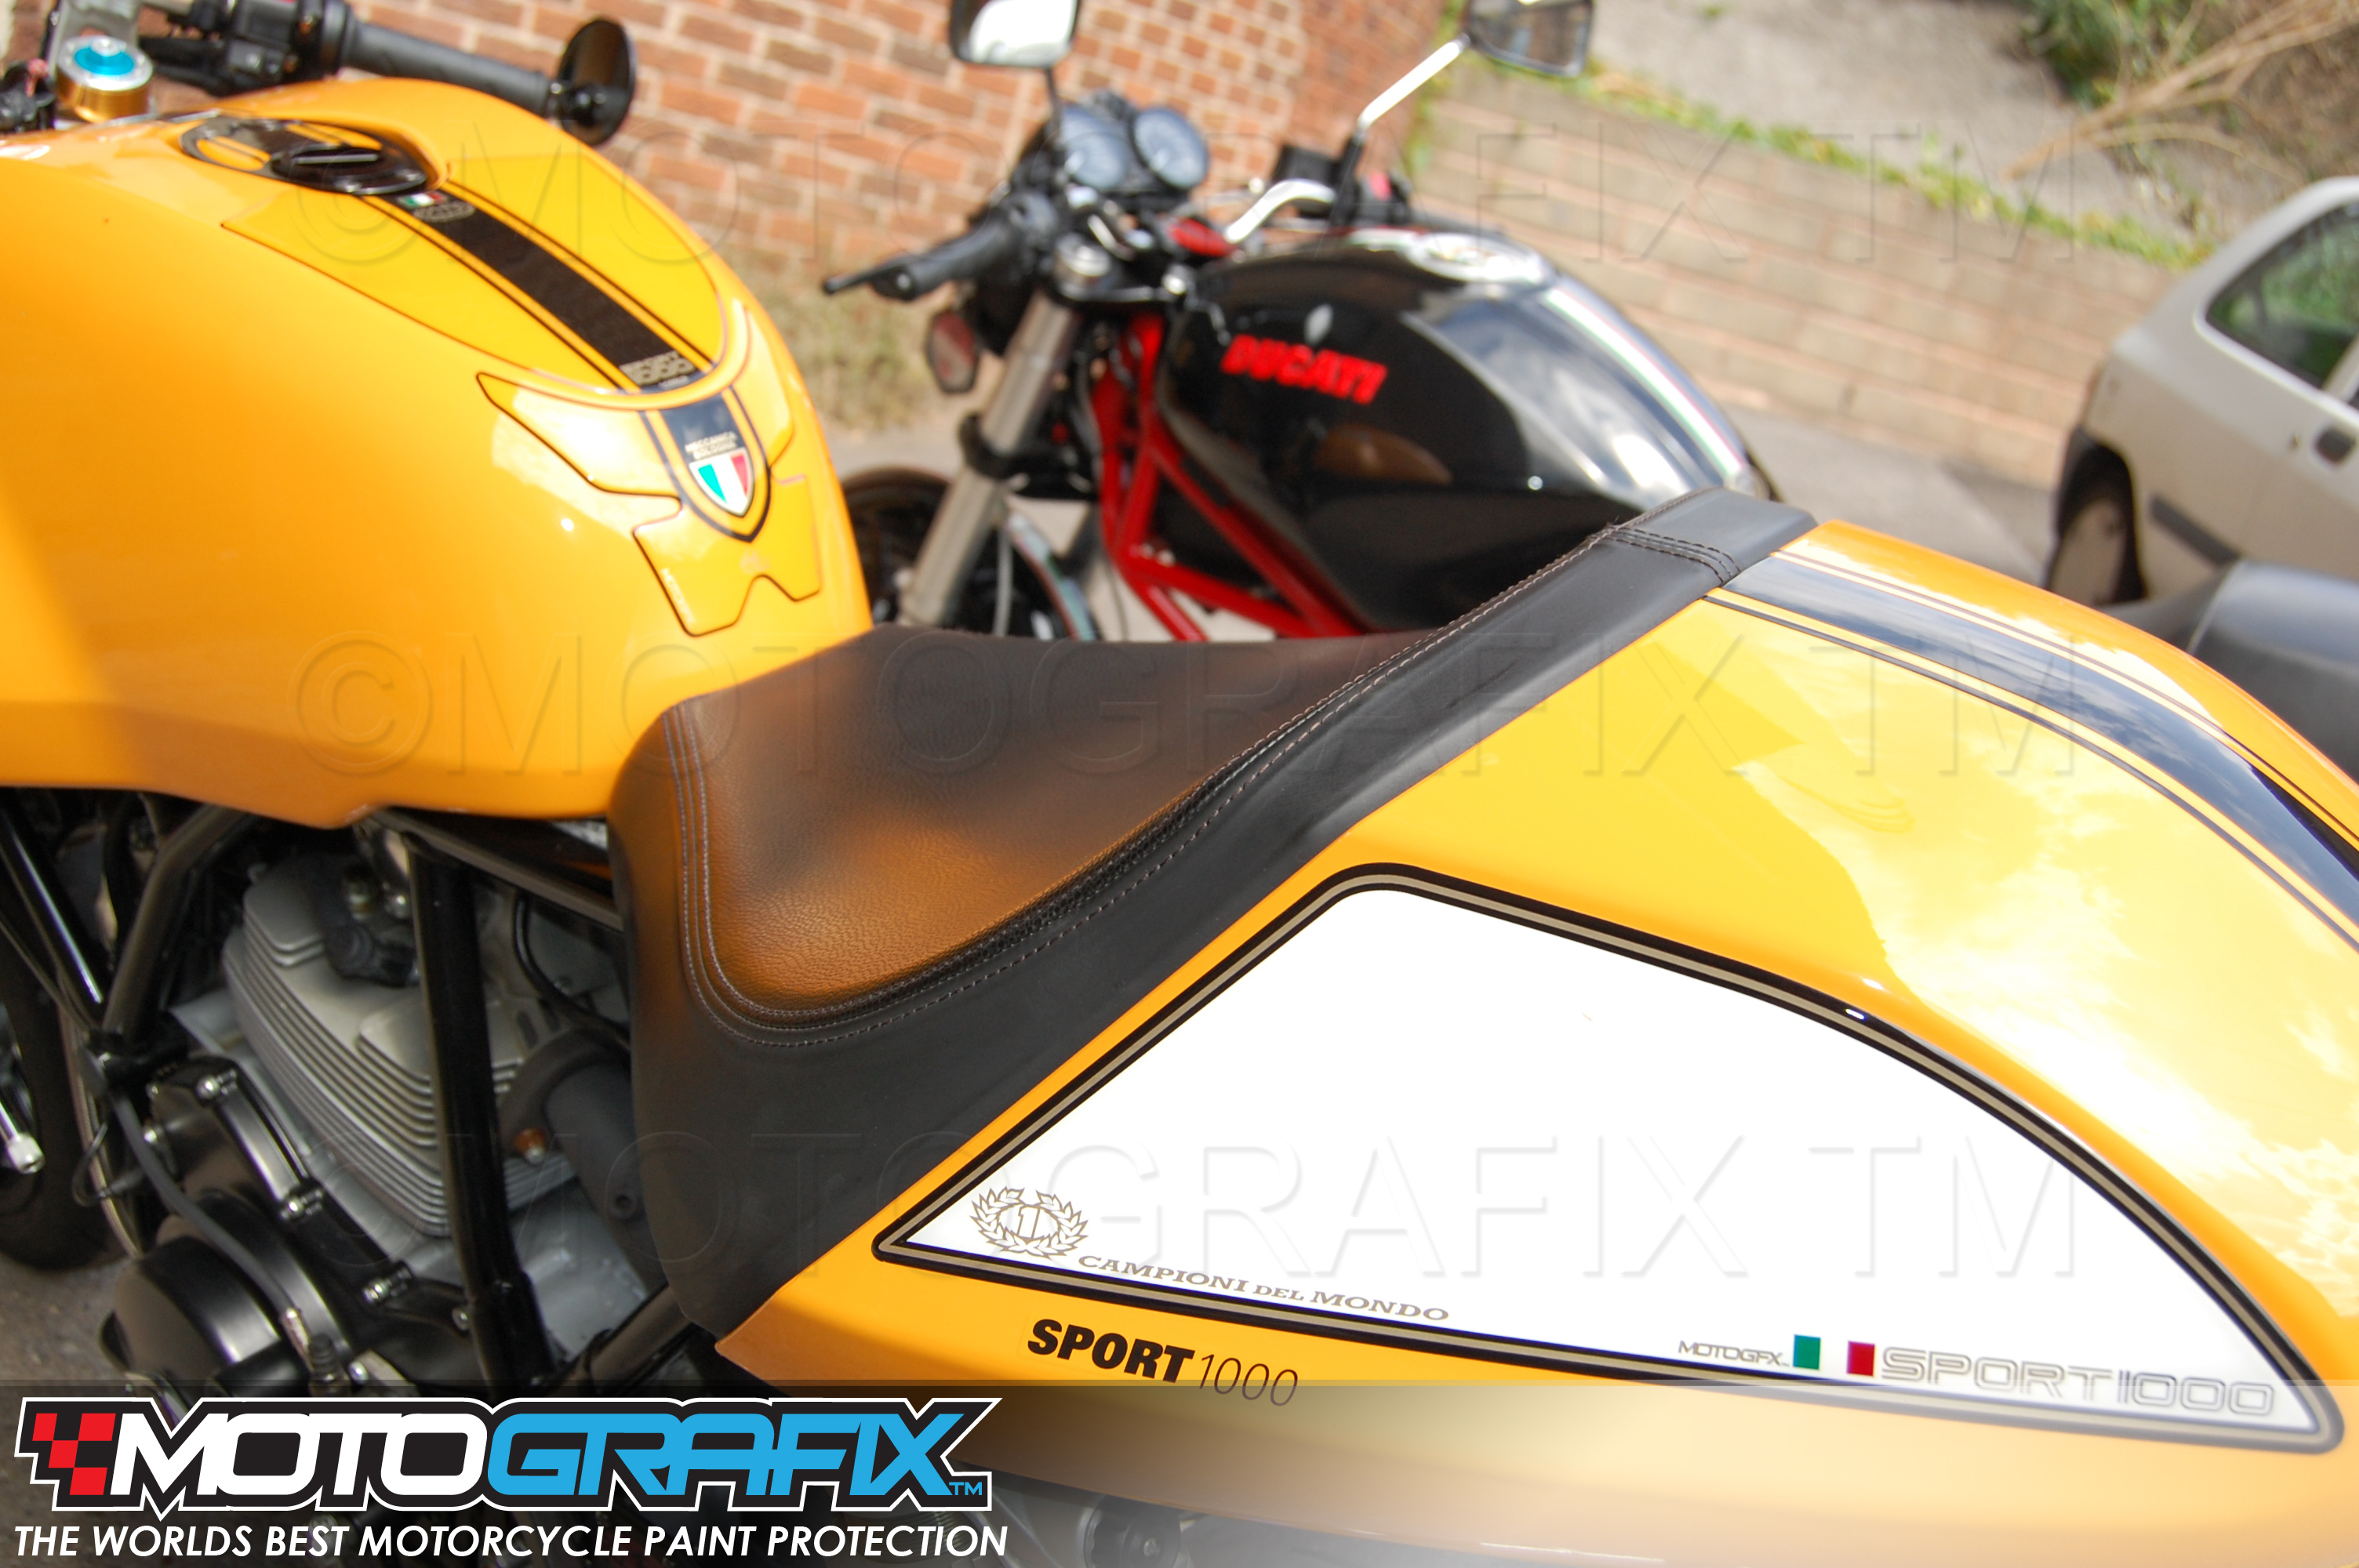 Bmw S1000rr For Sale >> Ducati Fitted Photo Gallery - Tank Pads & Fairing Protectors